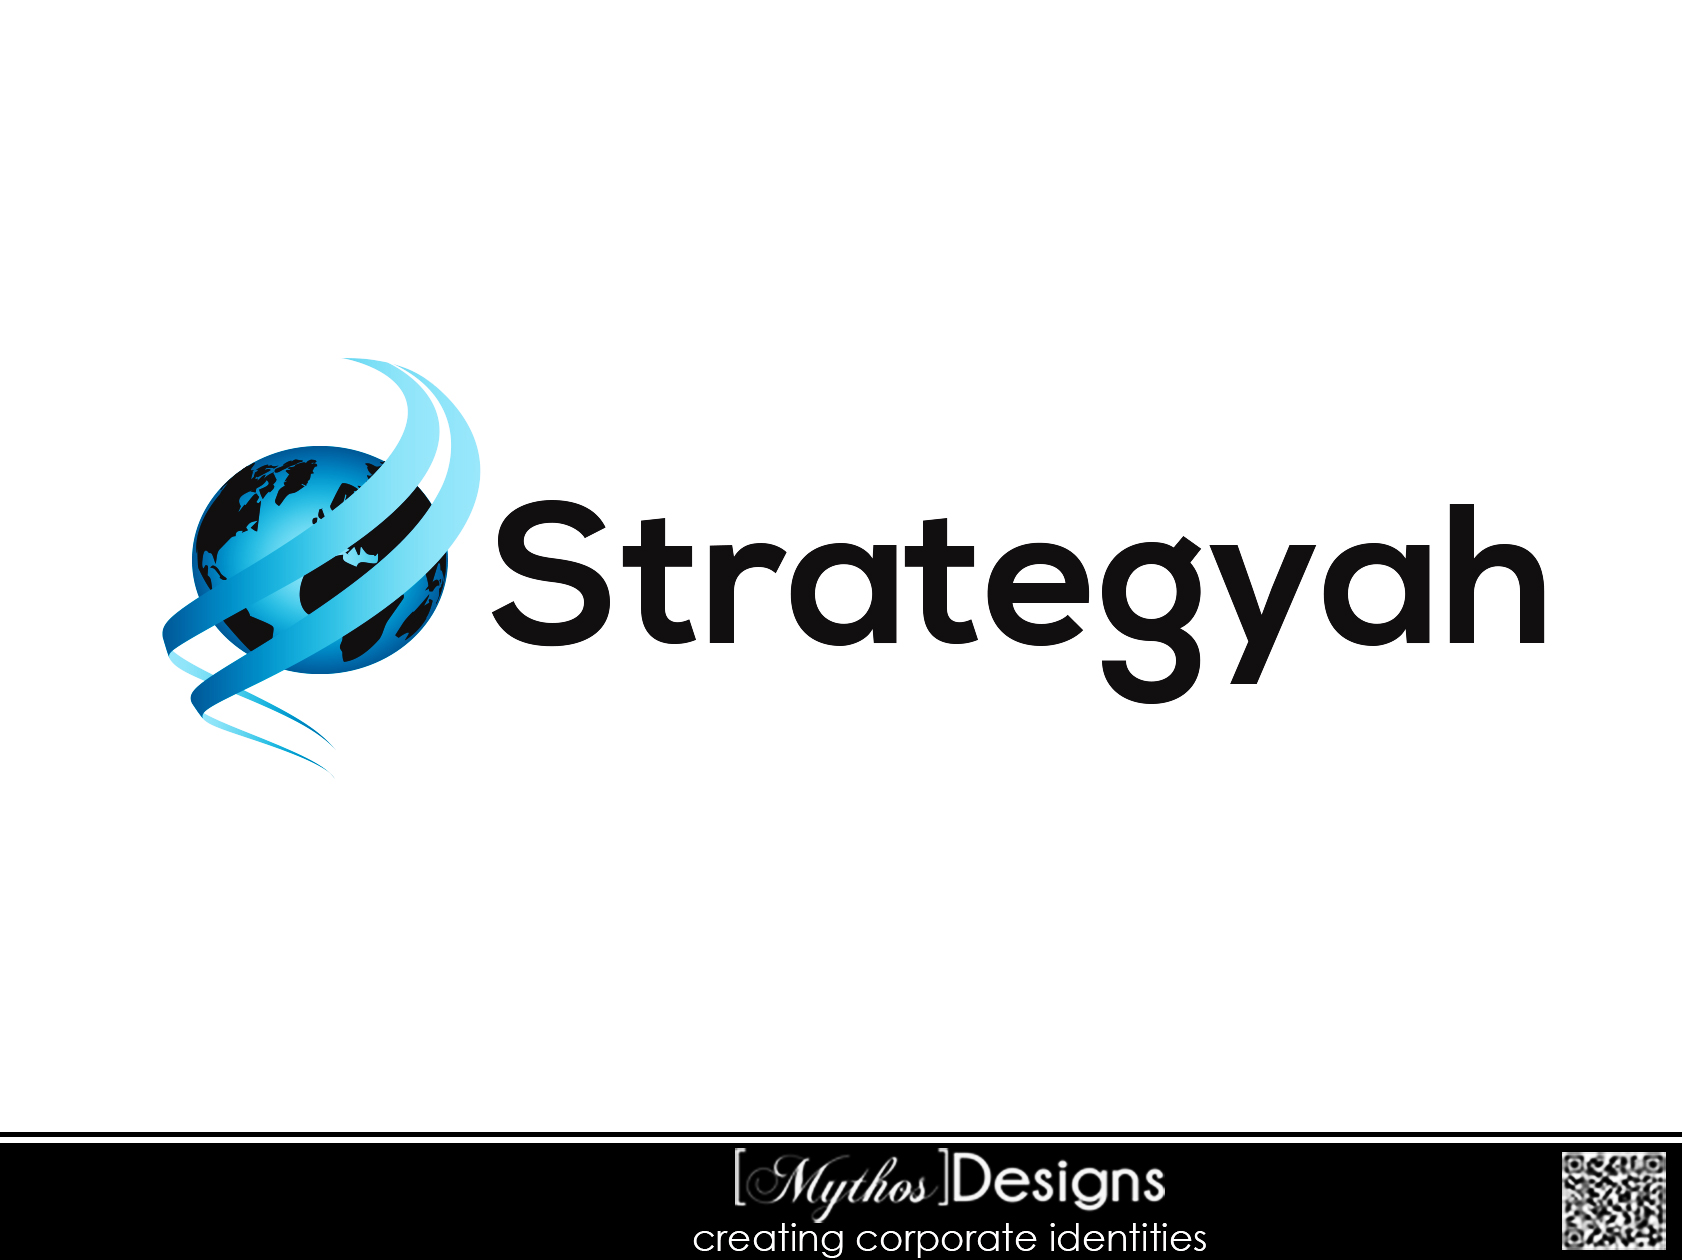 Logo Design by Mythos Designs - Entry No. 99 in the Logo Design Contest Creative Logo Design for Strategyah.